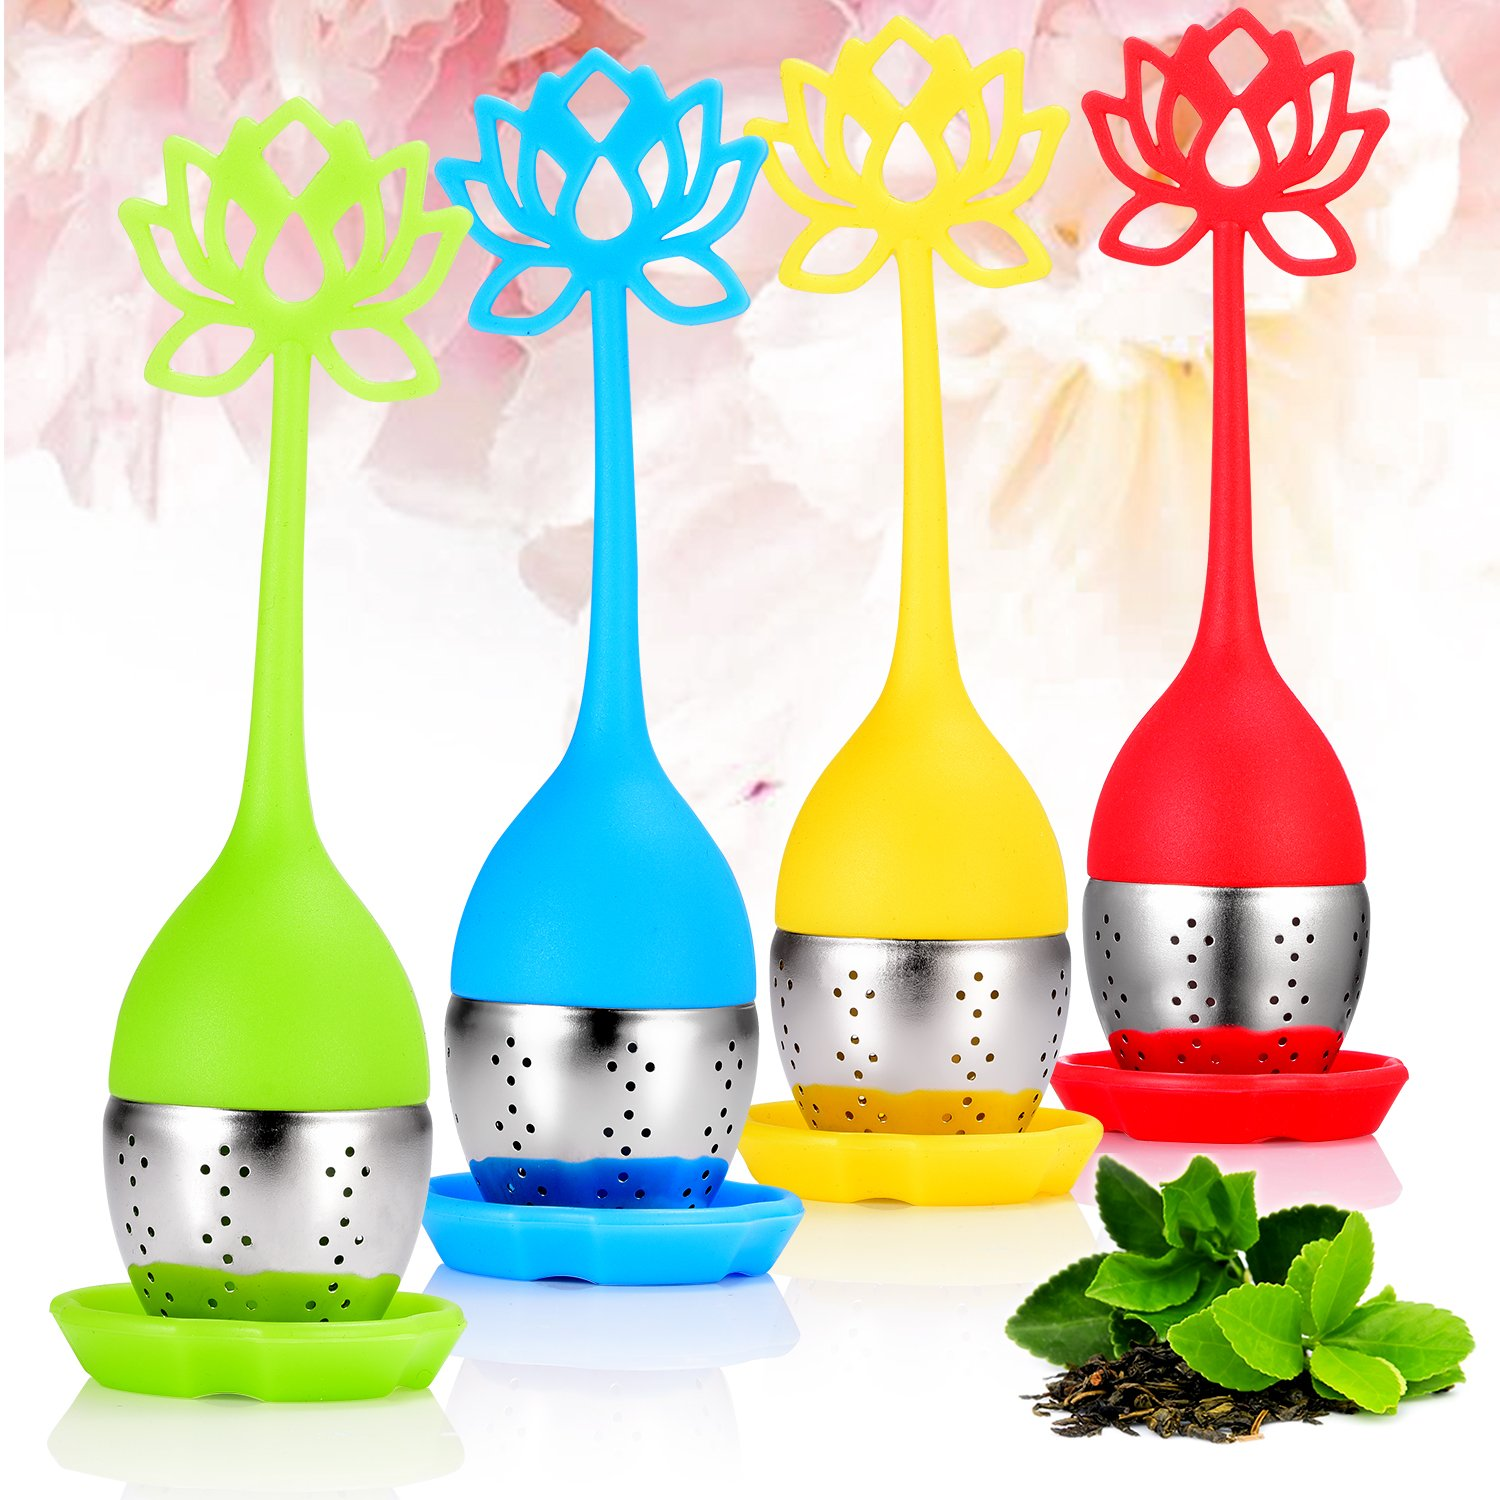 Tea Infuser- HouswillTM 4 Pack Silicone Tea Infuser for Loose Tea, Tea filters with Handle& Stainless Steel with Drip Tray, Reusable Tea Ball Herbal Tea Strainers for Herbal Weight Loss Tea